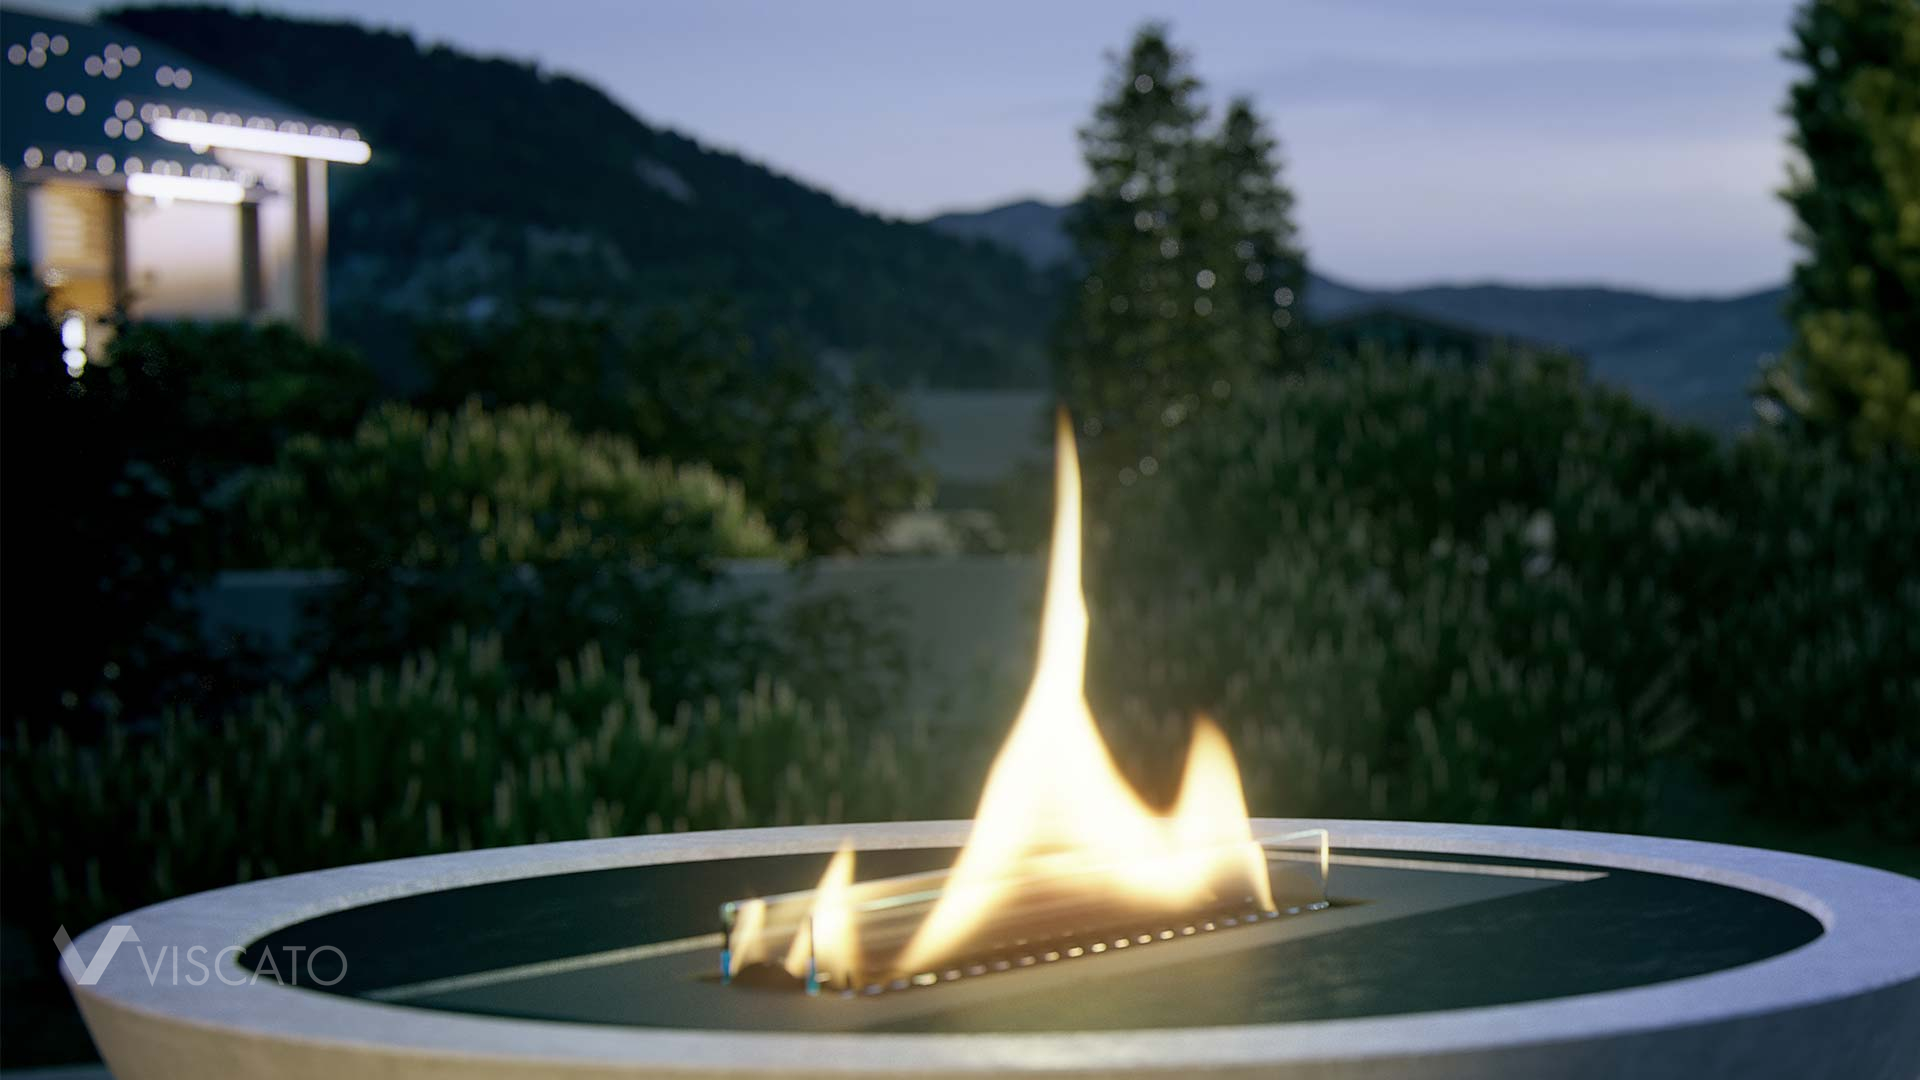 eco-friendly terrace burner - detail, Viscato 3D